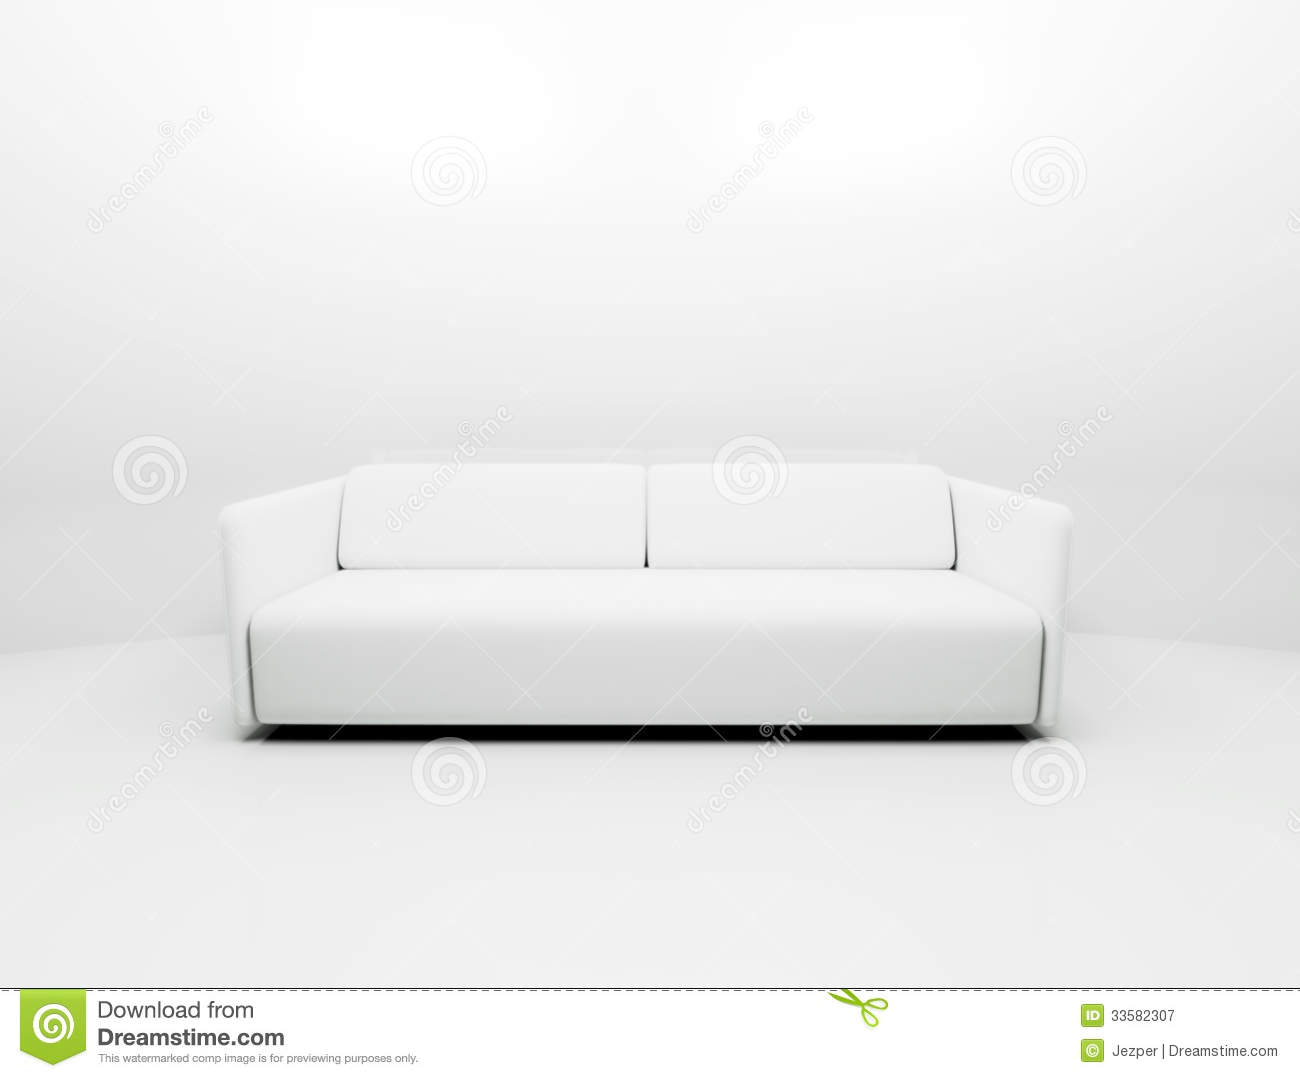 single white couch stock illustration image of home 33582307. Black Bedroom Furniture Sets. Home Design Ideas